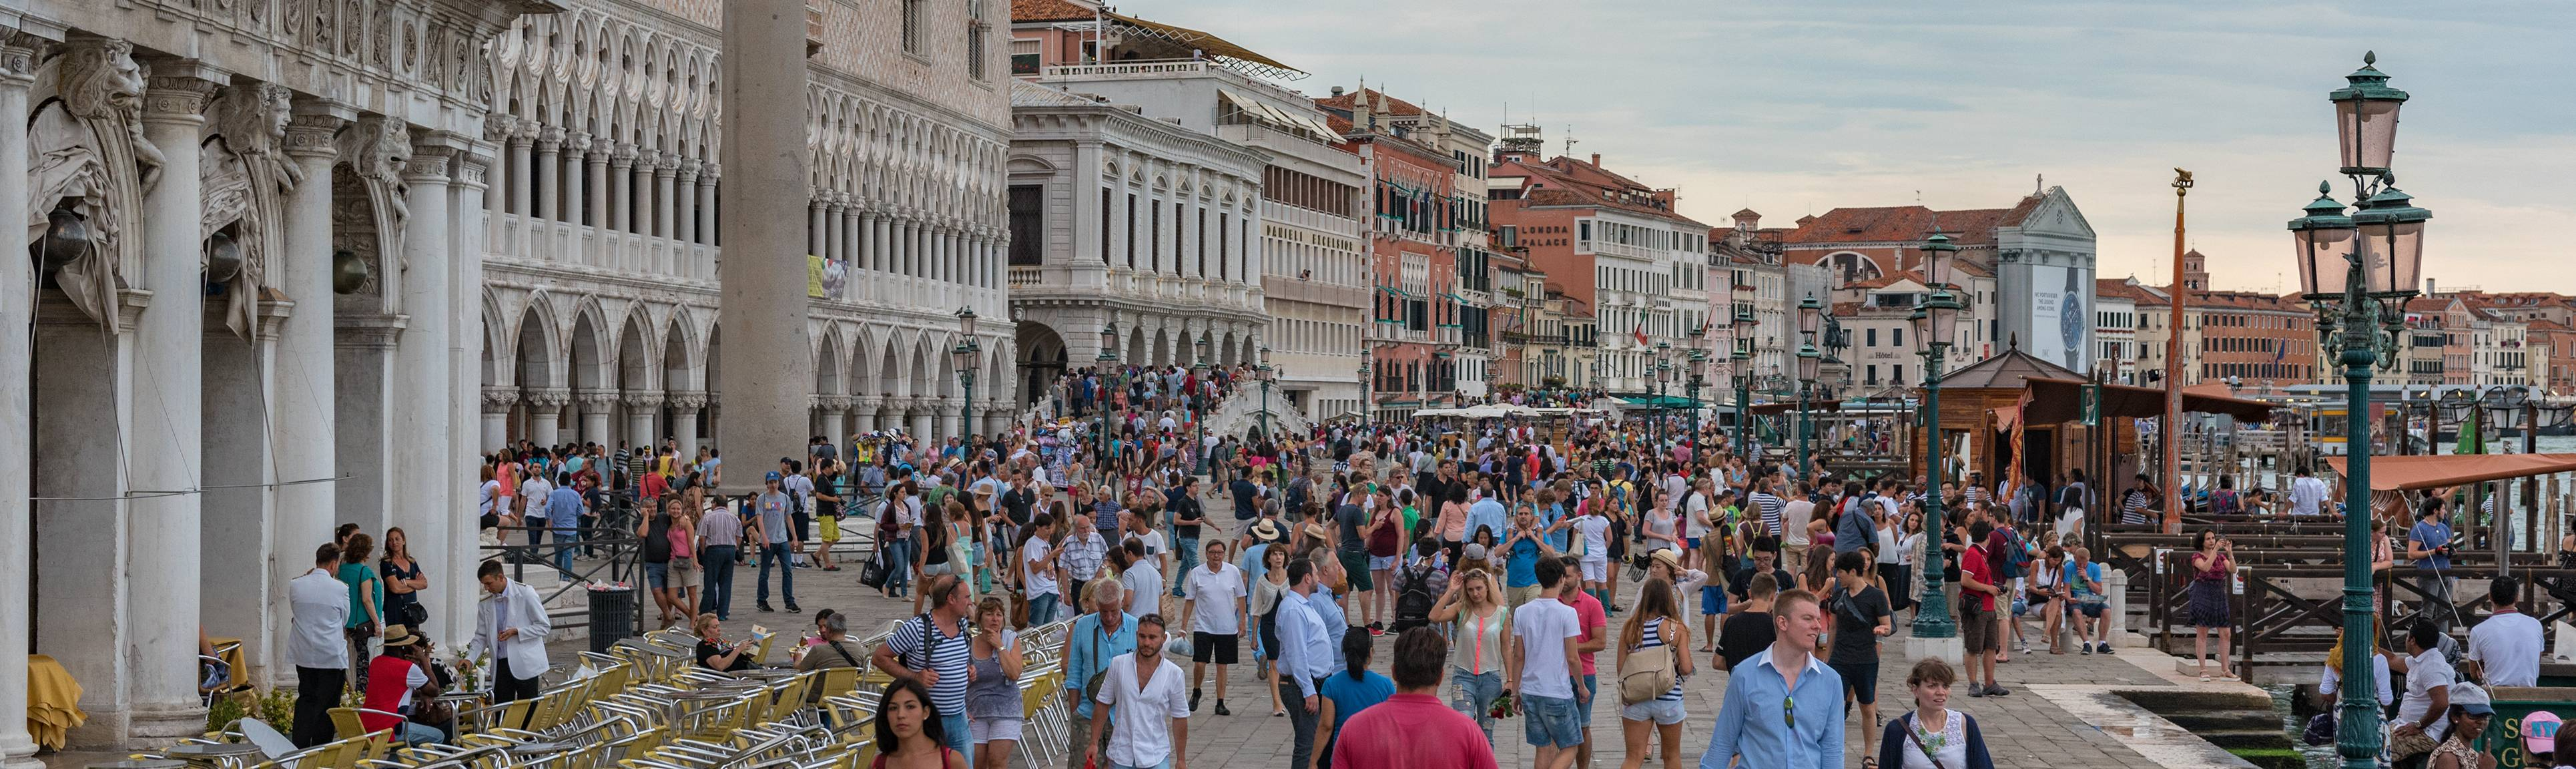 Many visitors walking through the Piazza San Marco in Venice